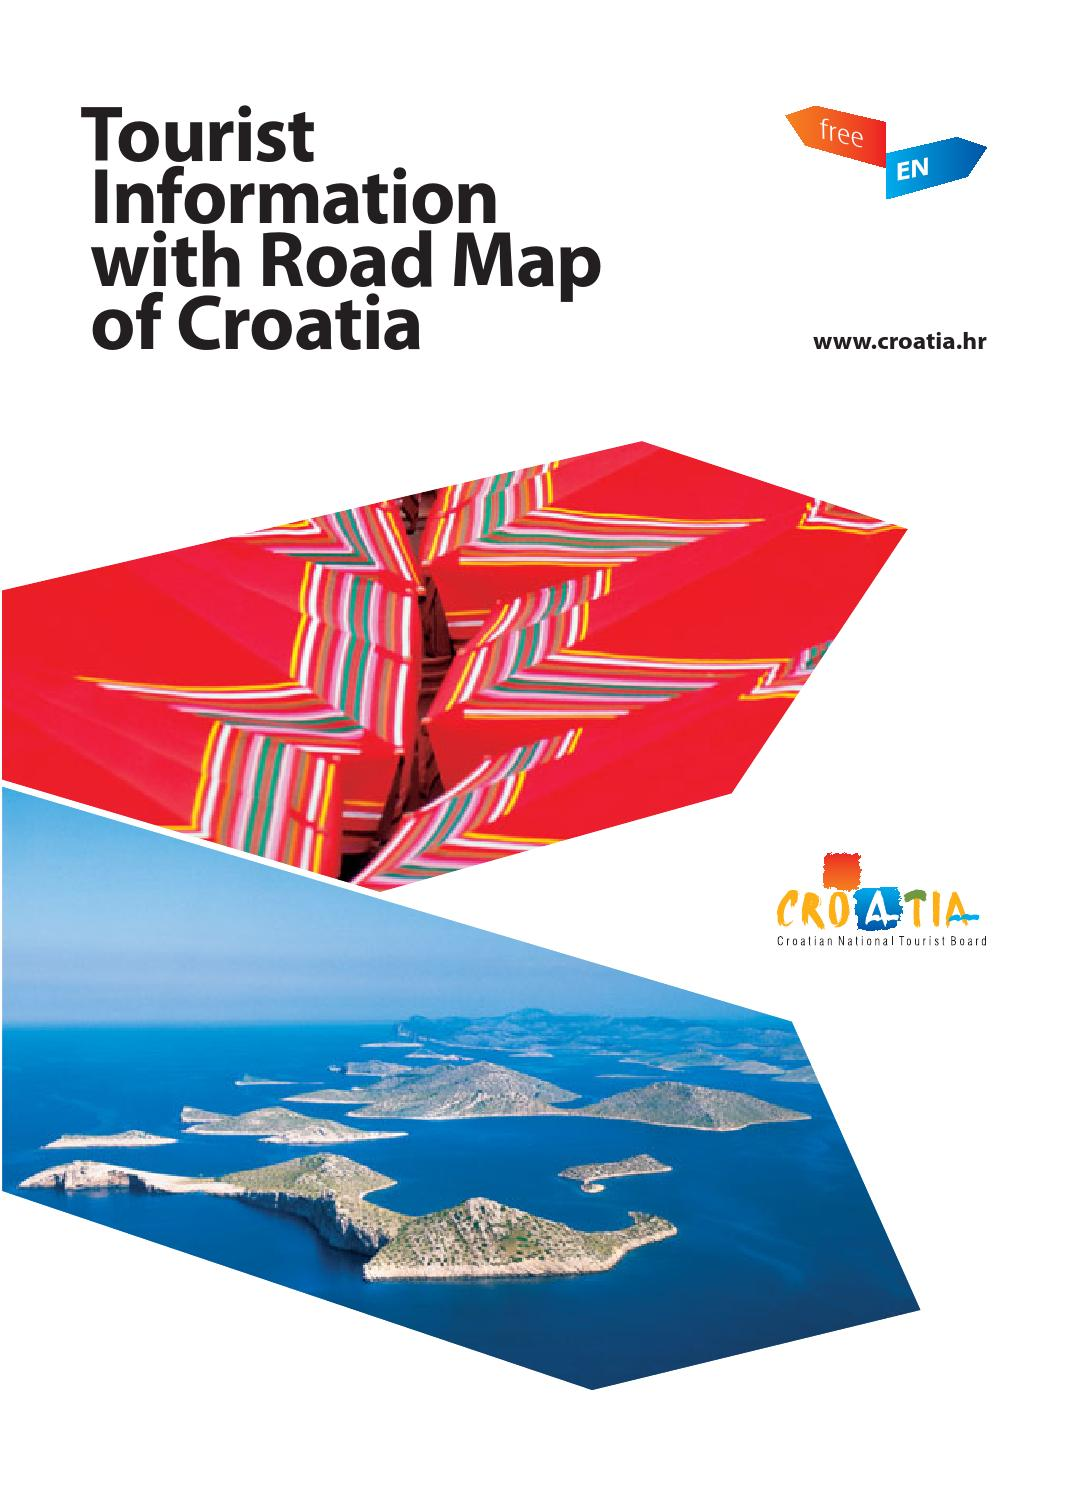 Tourist information with road map of croatia 2015 en by